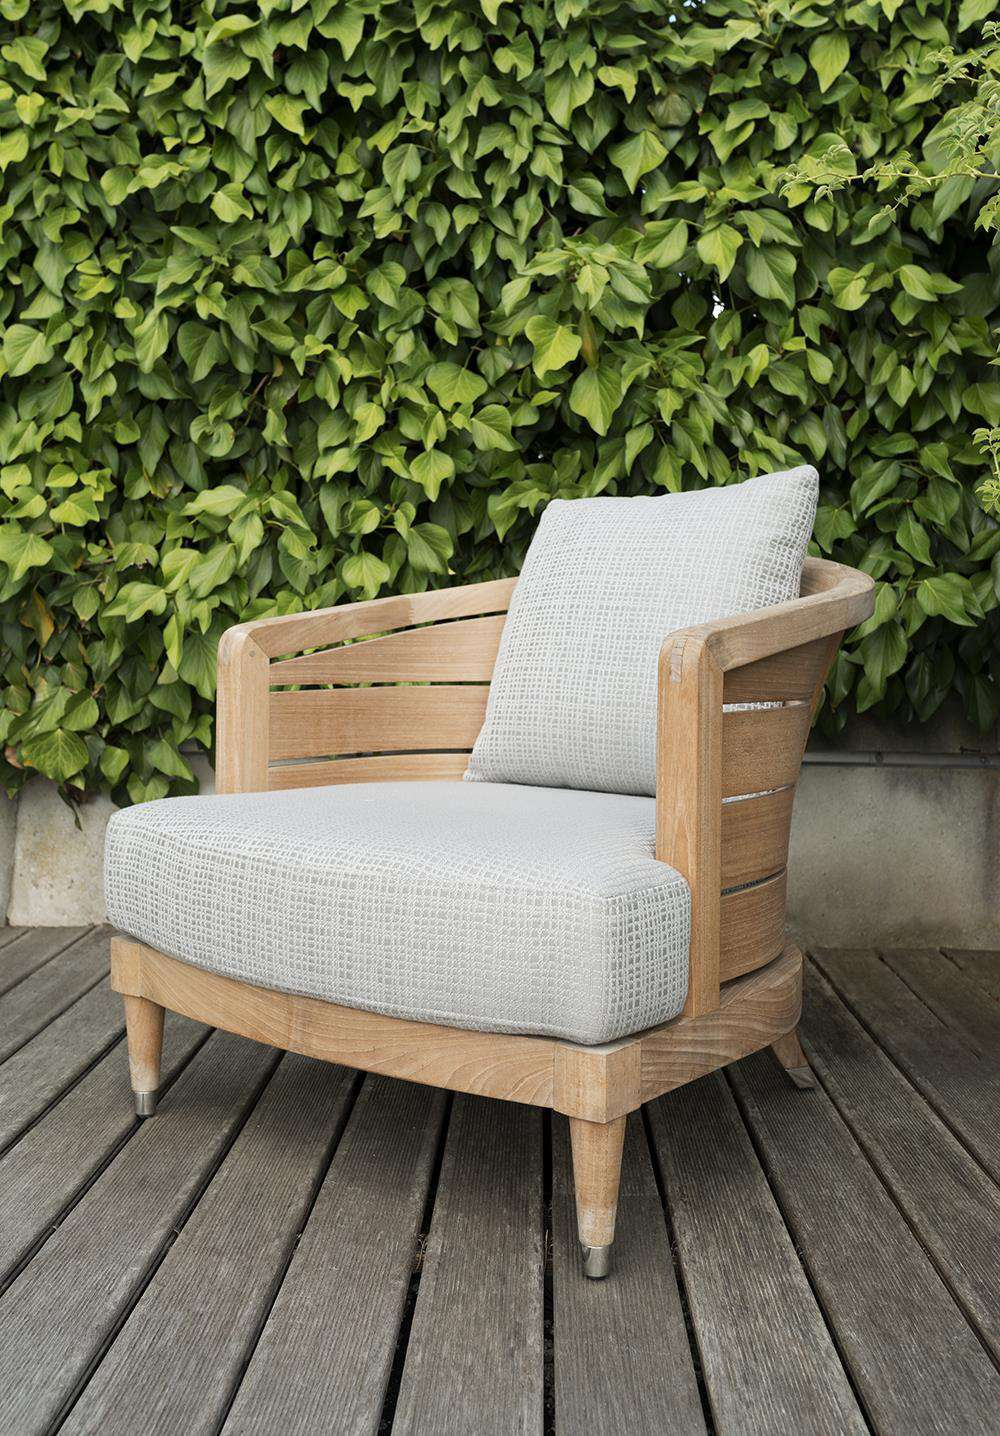 DECKSMART INTERNATIONAL GLYN PETER MACHIN OCEANSAND LOUNGE CHAIRS X 2